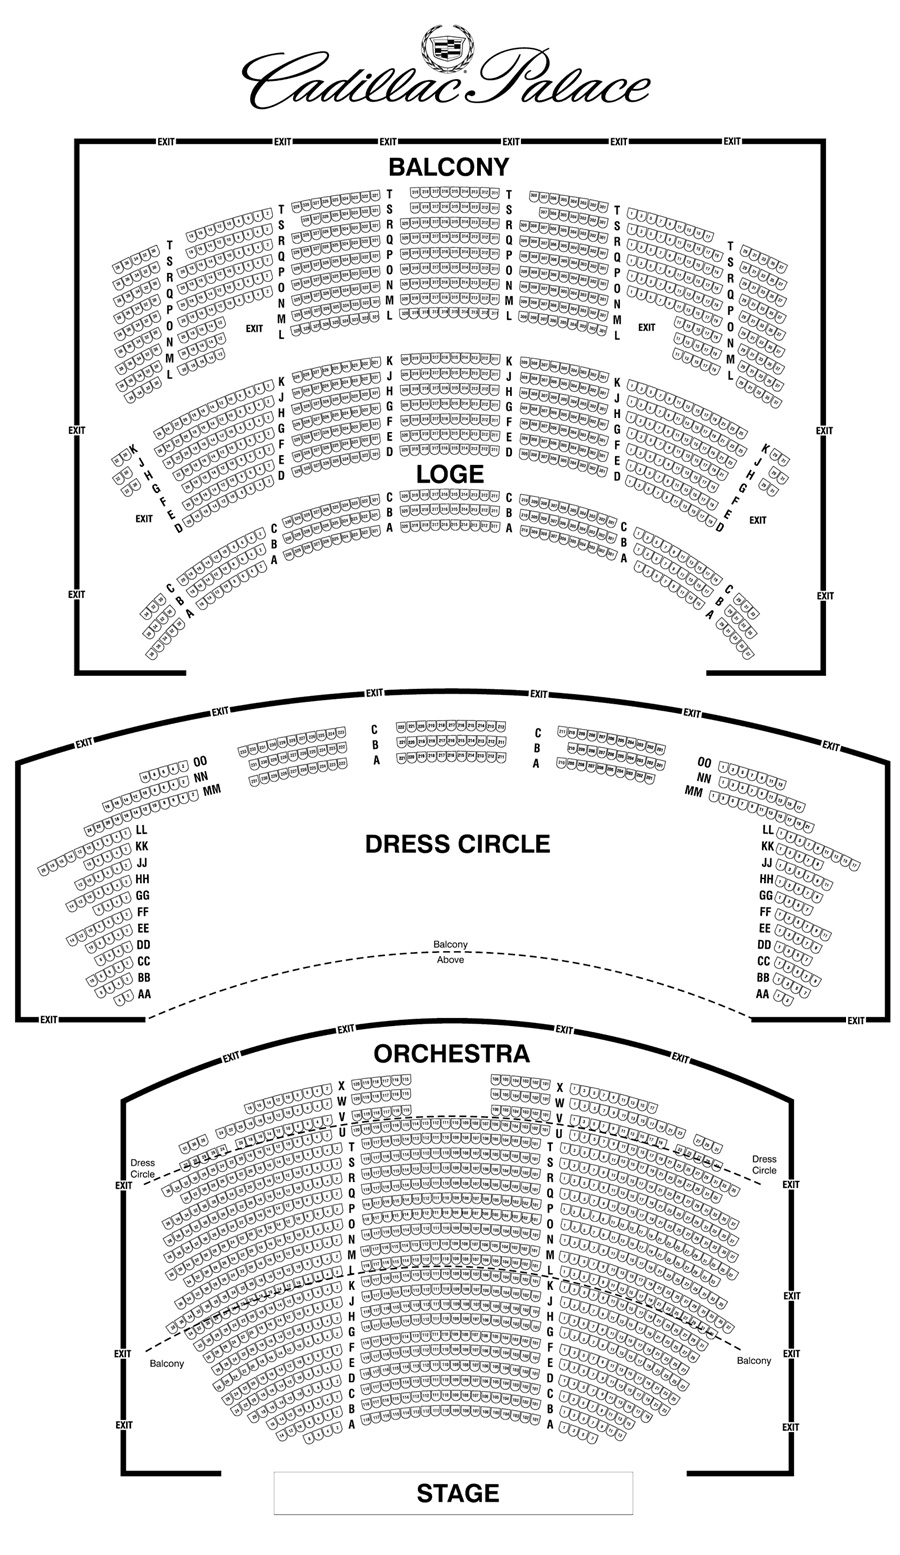 Cadillac Palace Theatre Seating Chart